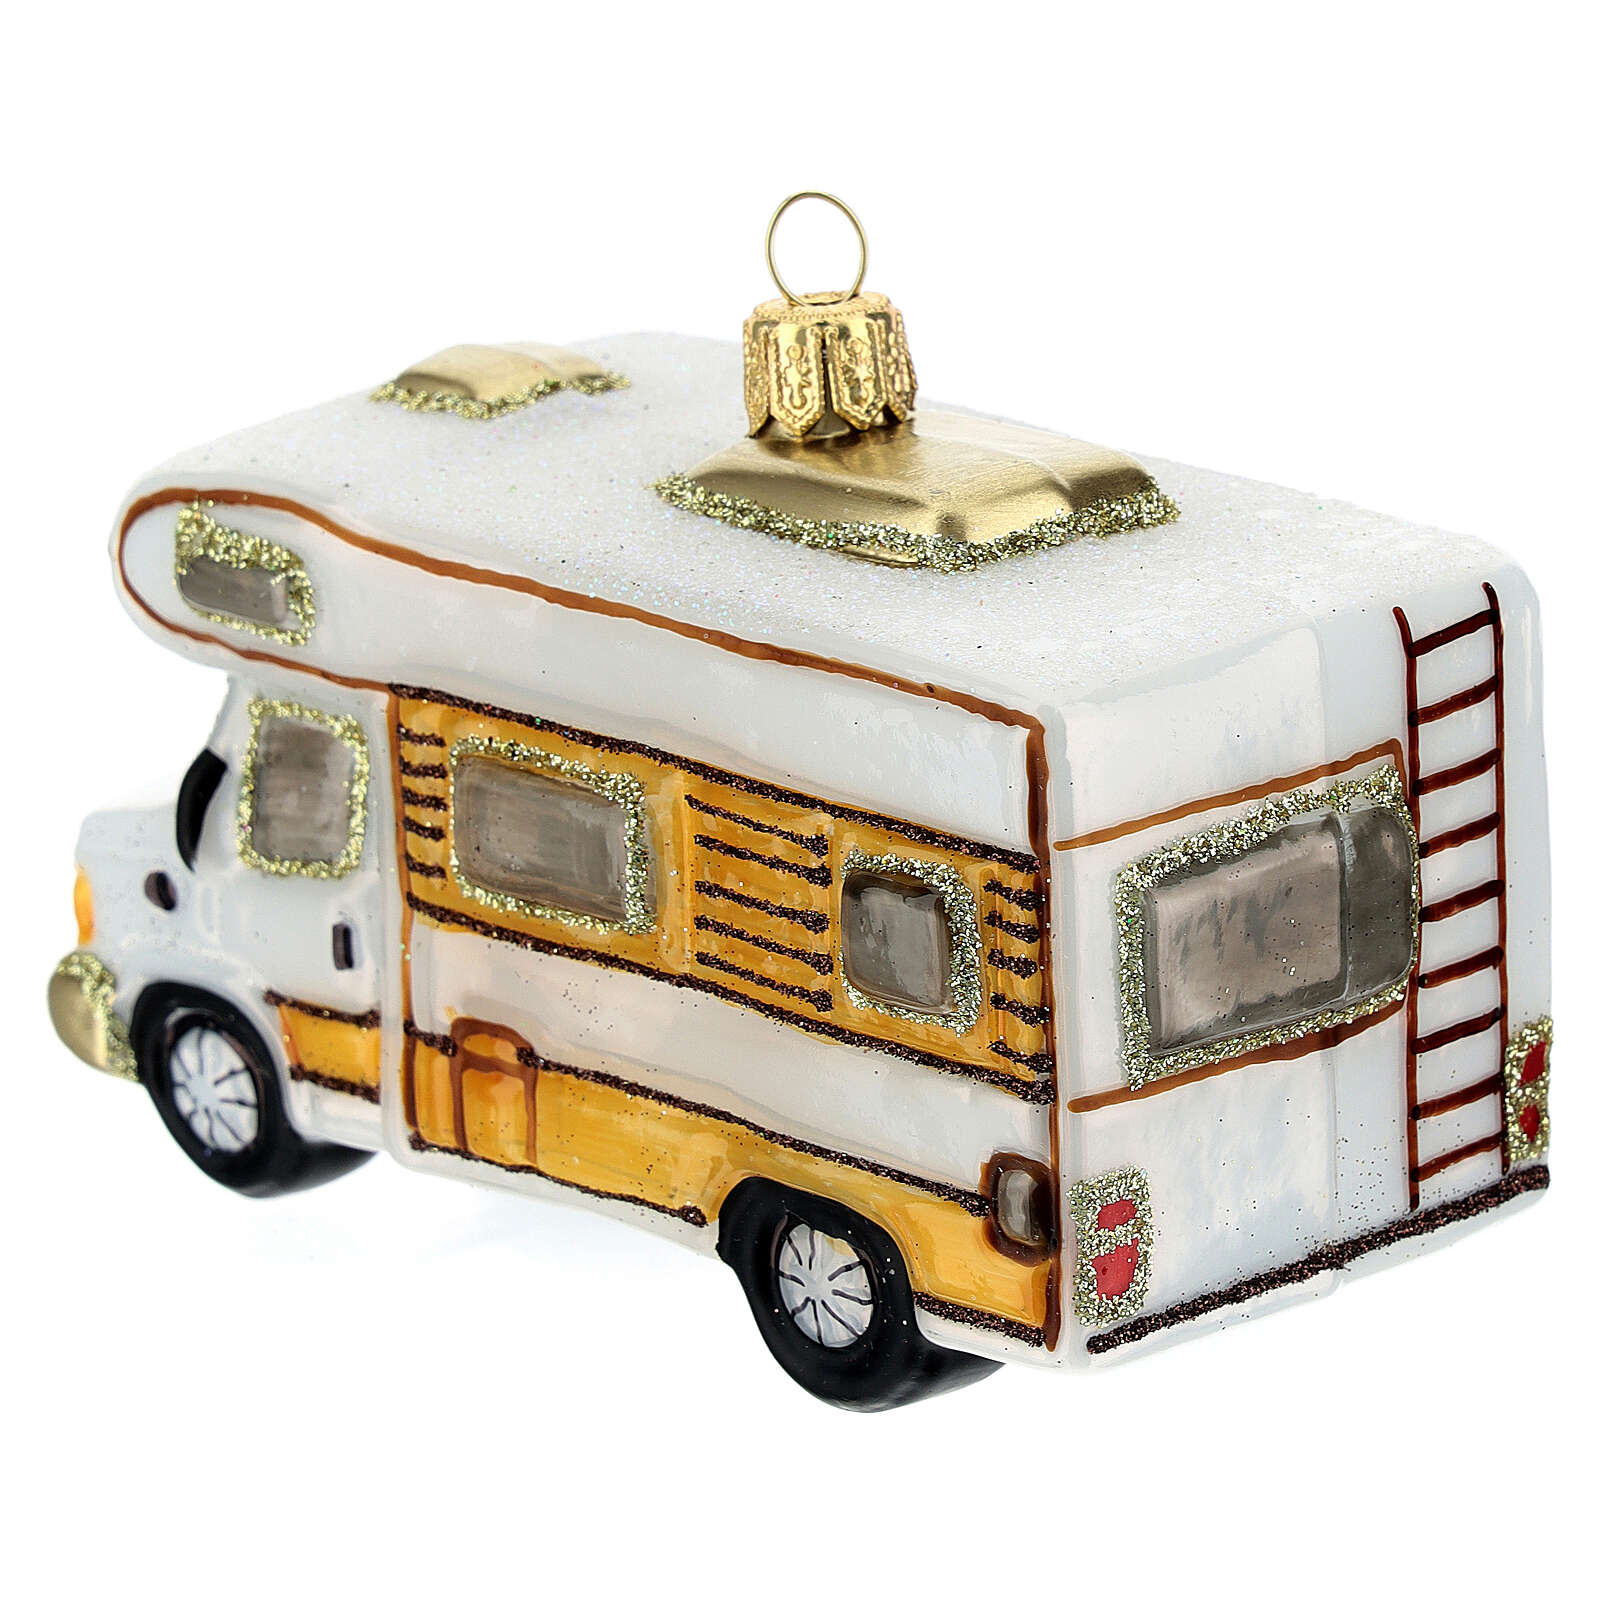 Motorhome blown glass Christmas tree decoration 4